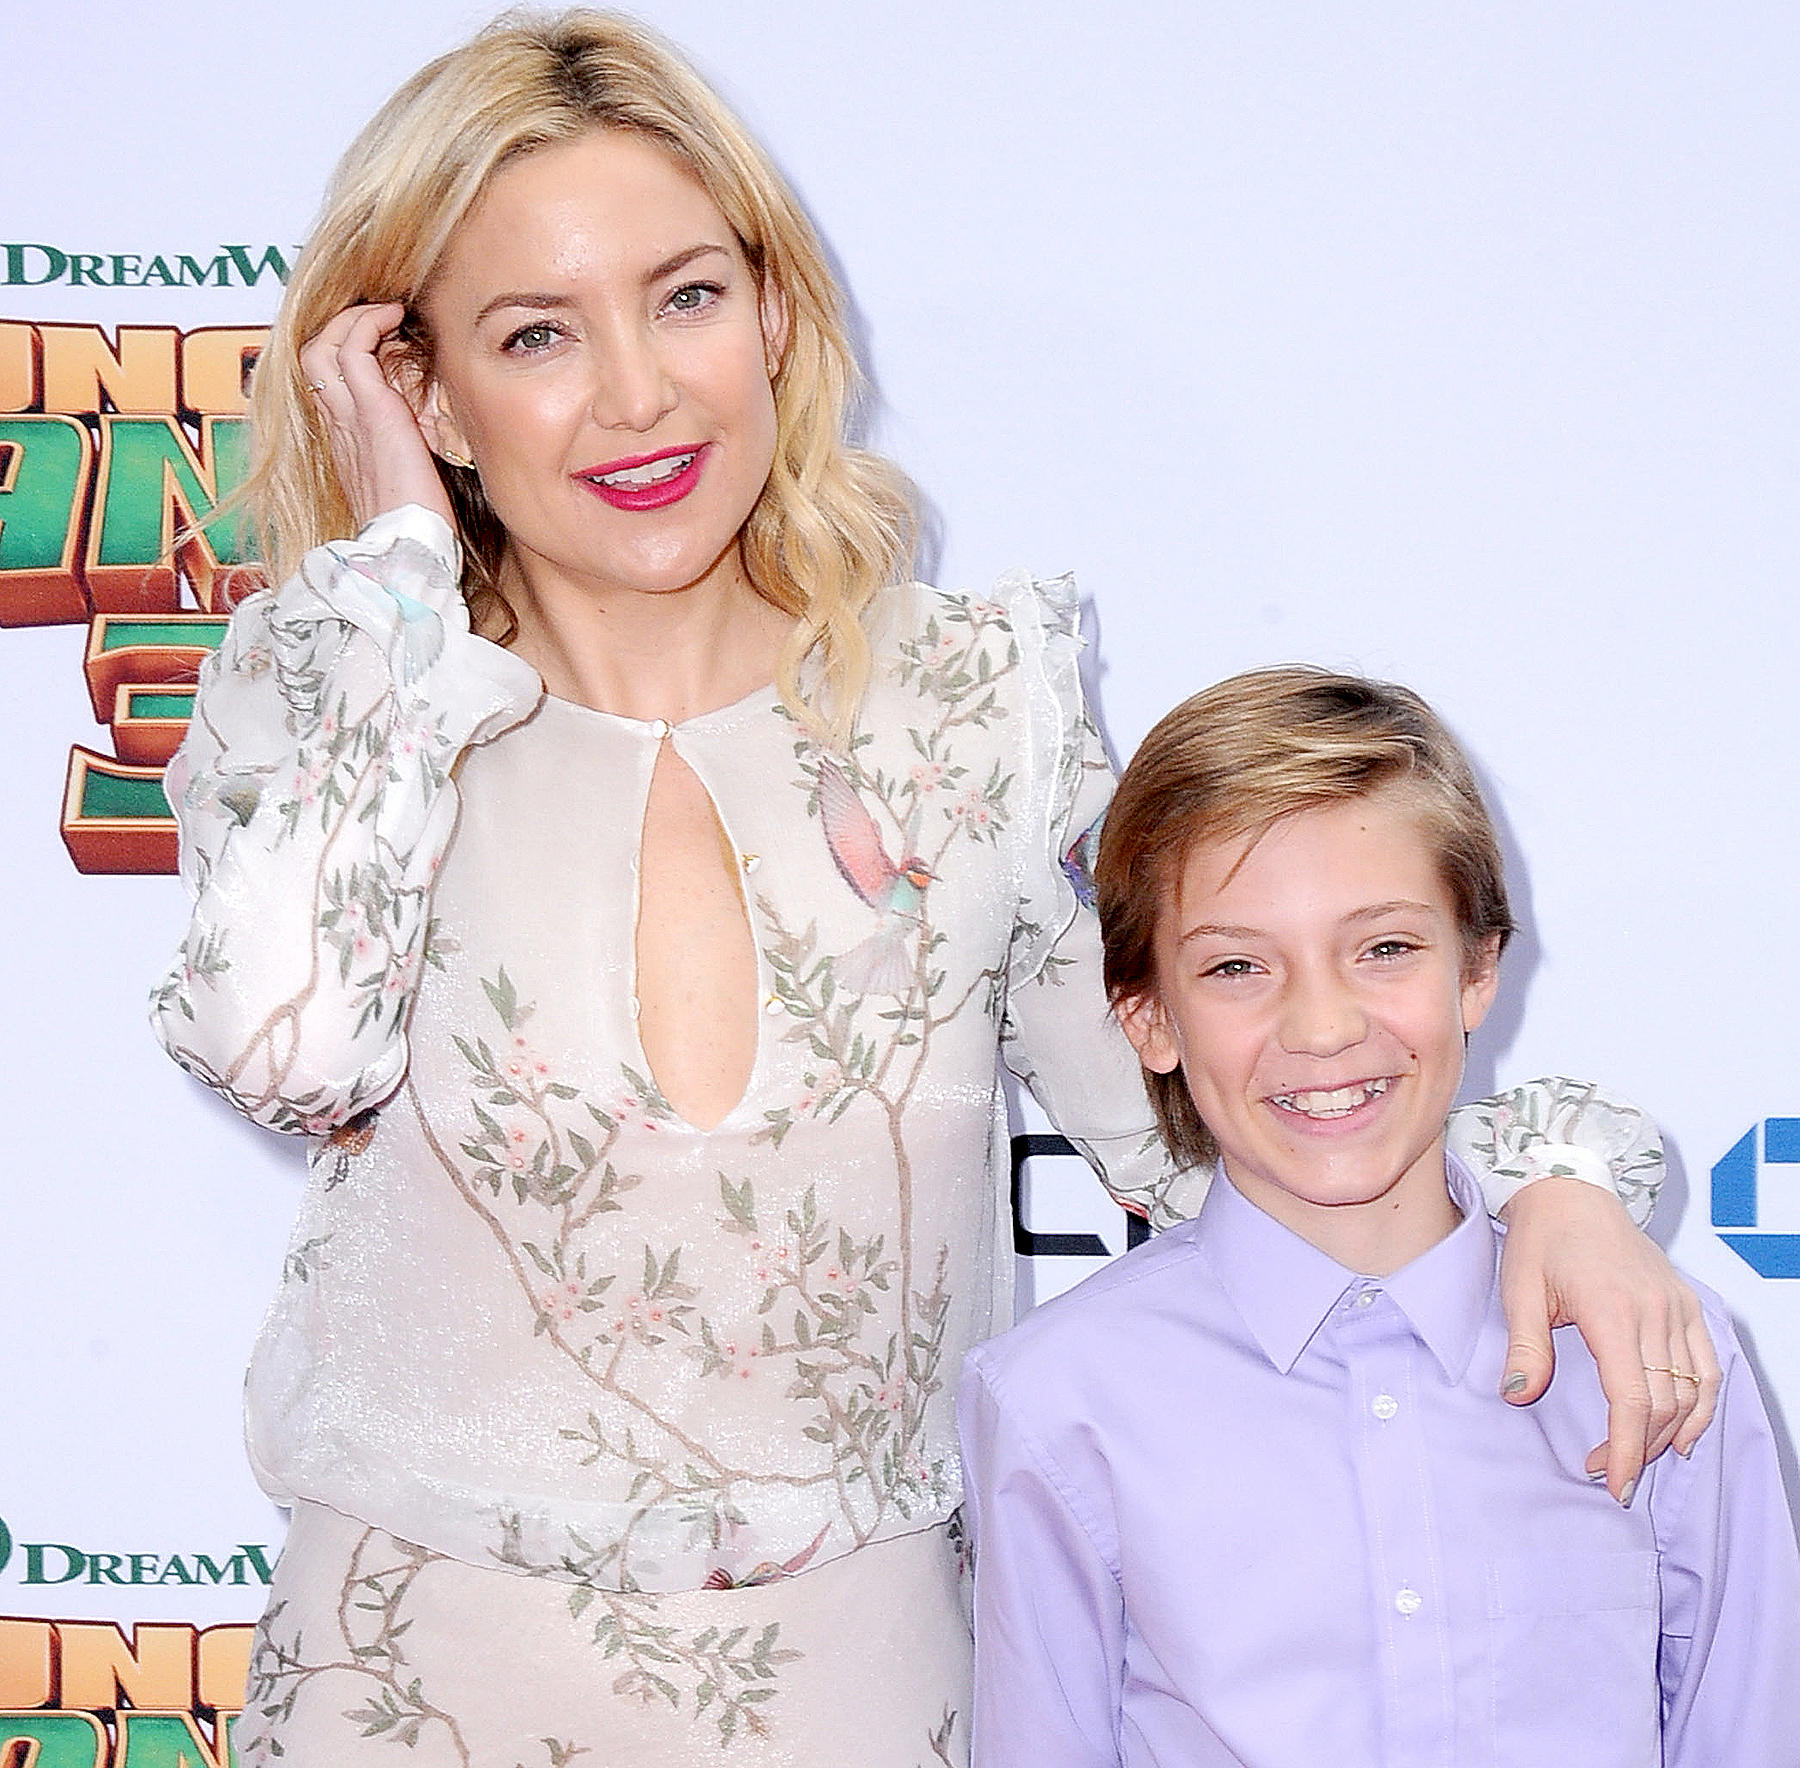 Kate Hudson and son Ryder Robinson arrive at the Premiere of DreamWorks and Twentieth Century Fox's 'Kung Fu Panda 3' at TCL Chinese Theatre on January 16, 2016 in Hollywood, California.